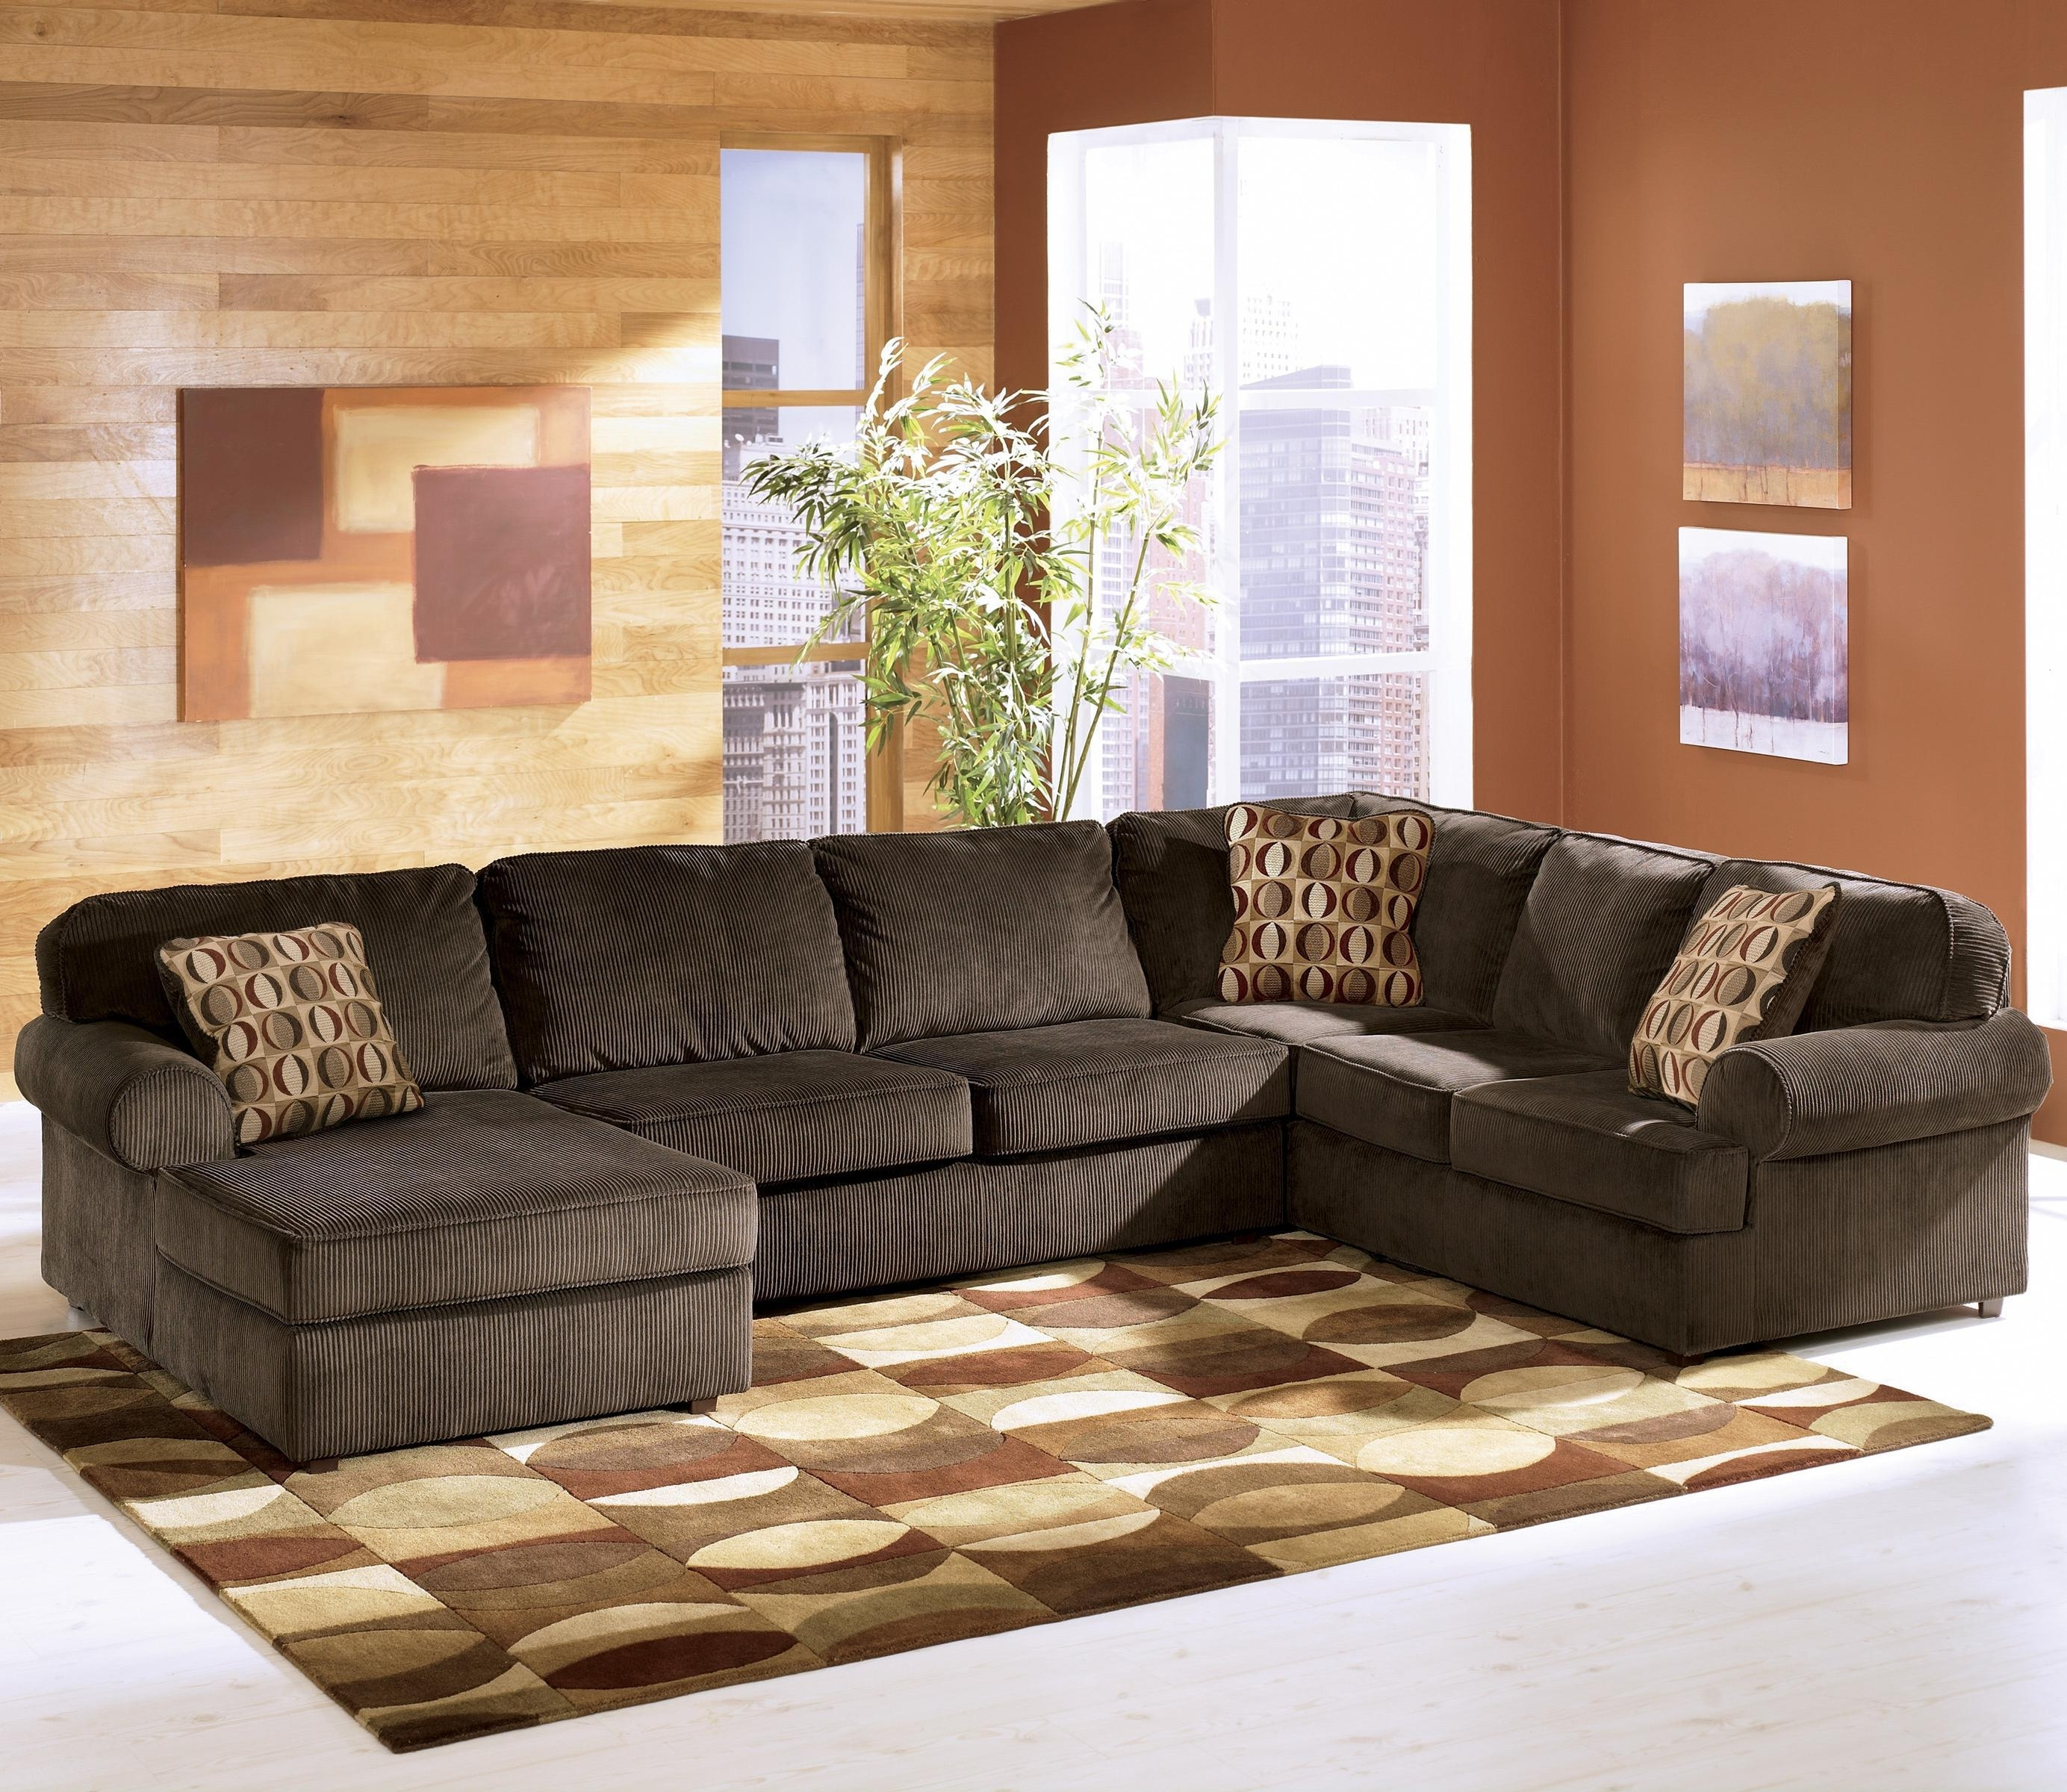 Furniture & Sofa: Cheap Couches | Ashley Furniture Evansville with Wichita Ks Sectional Sofas (Image 10 of 10)